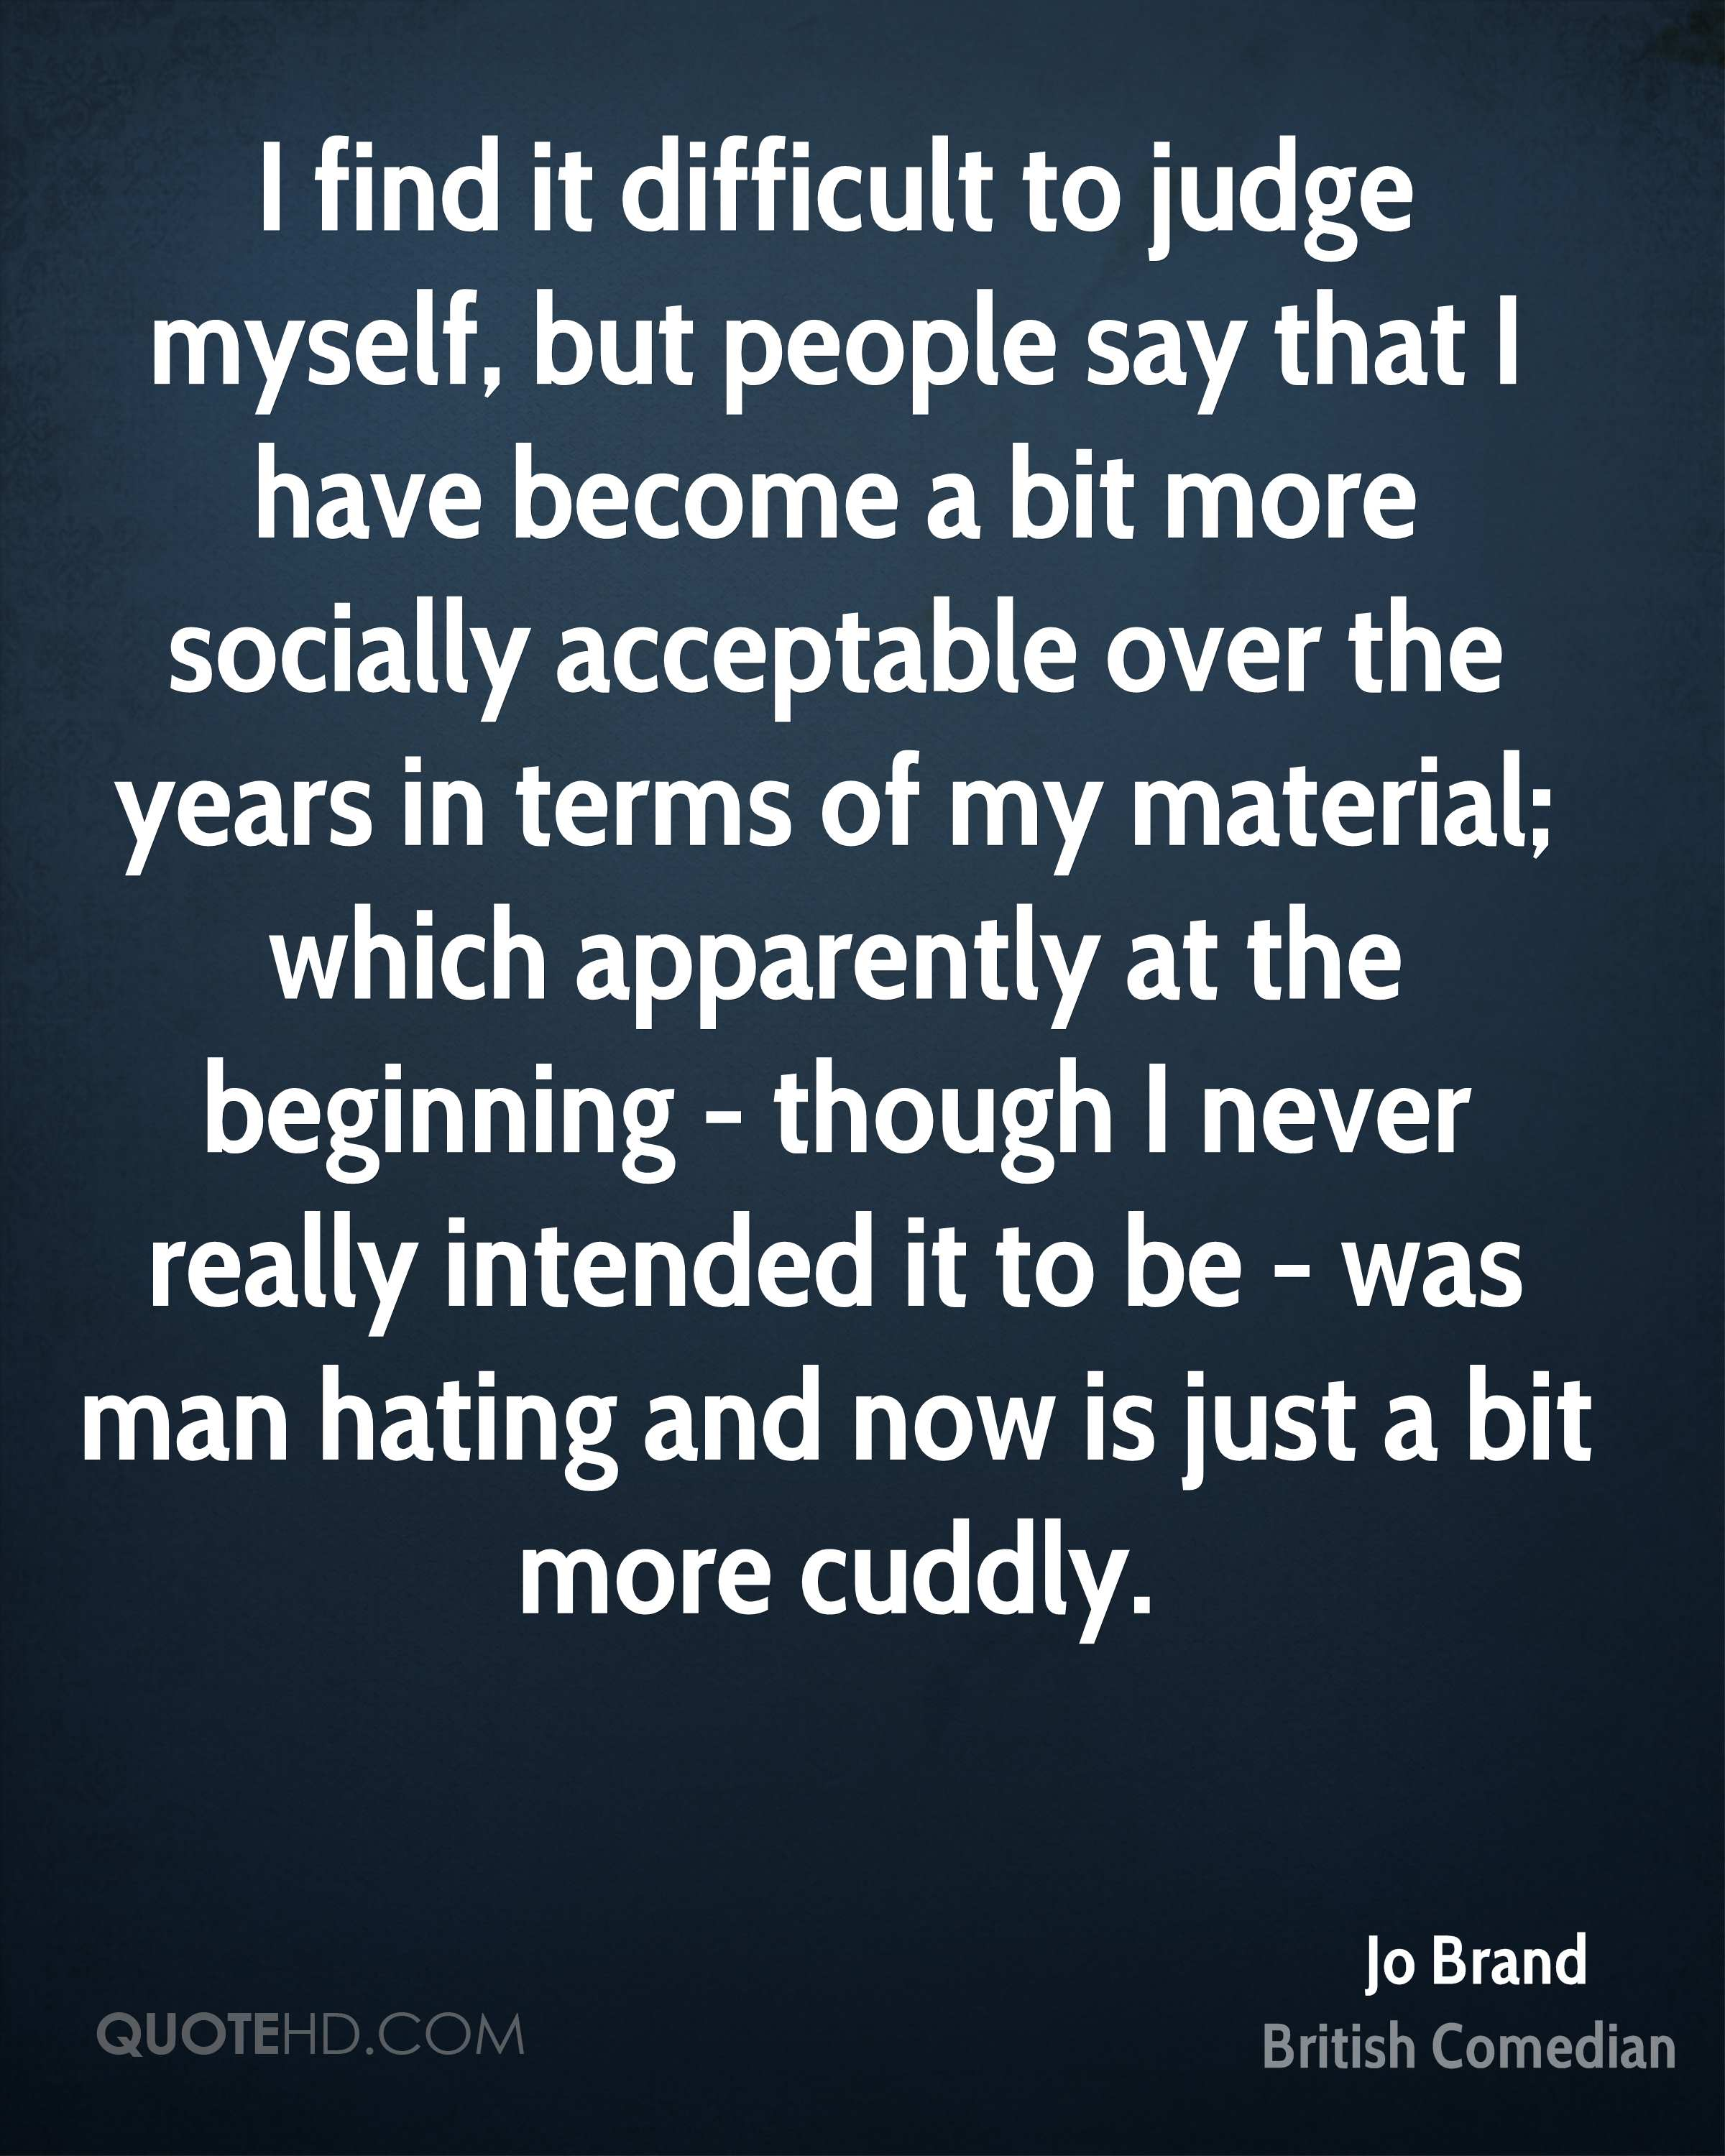 I find it difficult to judge myself, but people say that I have become a bit more socially acceptable over the years in terms of my material; which apparently at the beginning - though I never really intended it to be - was man hating and now is just a bit more cuddly.